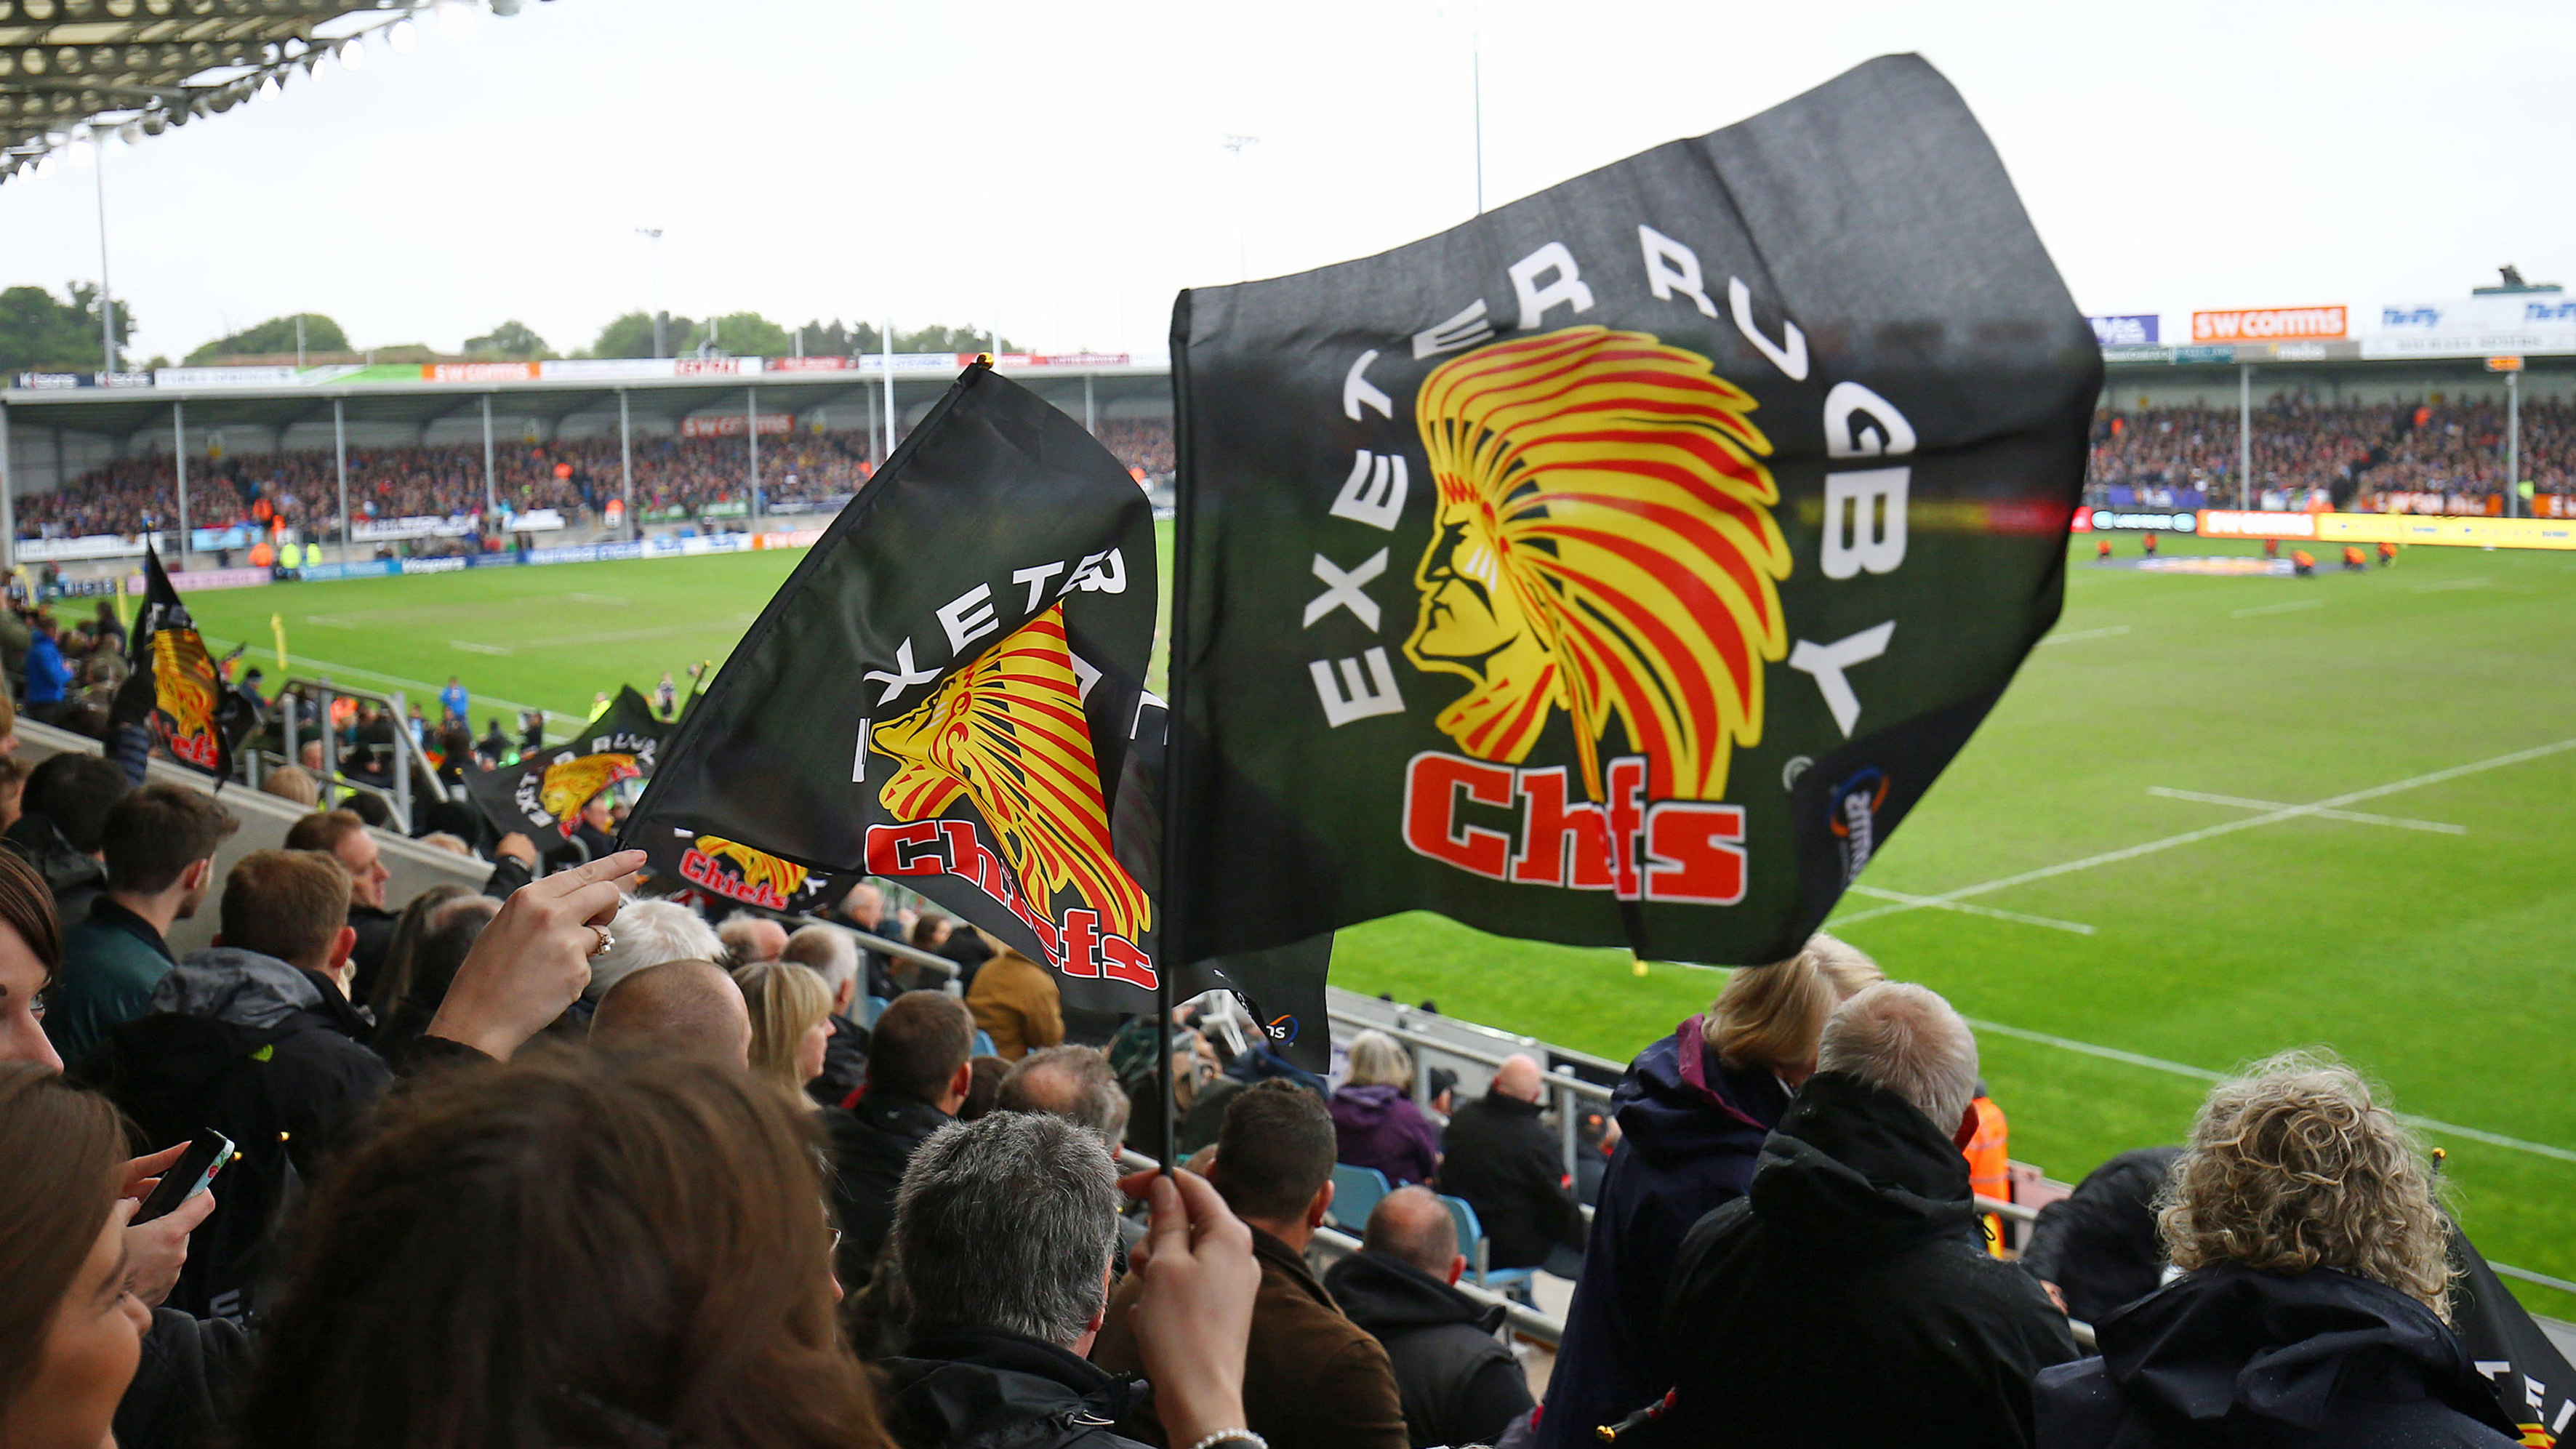 exeter chiefs - photo #14